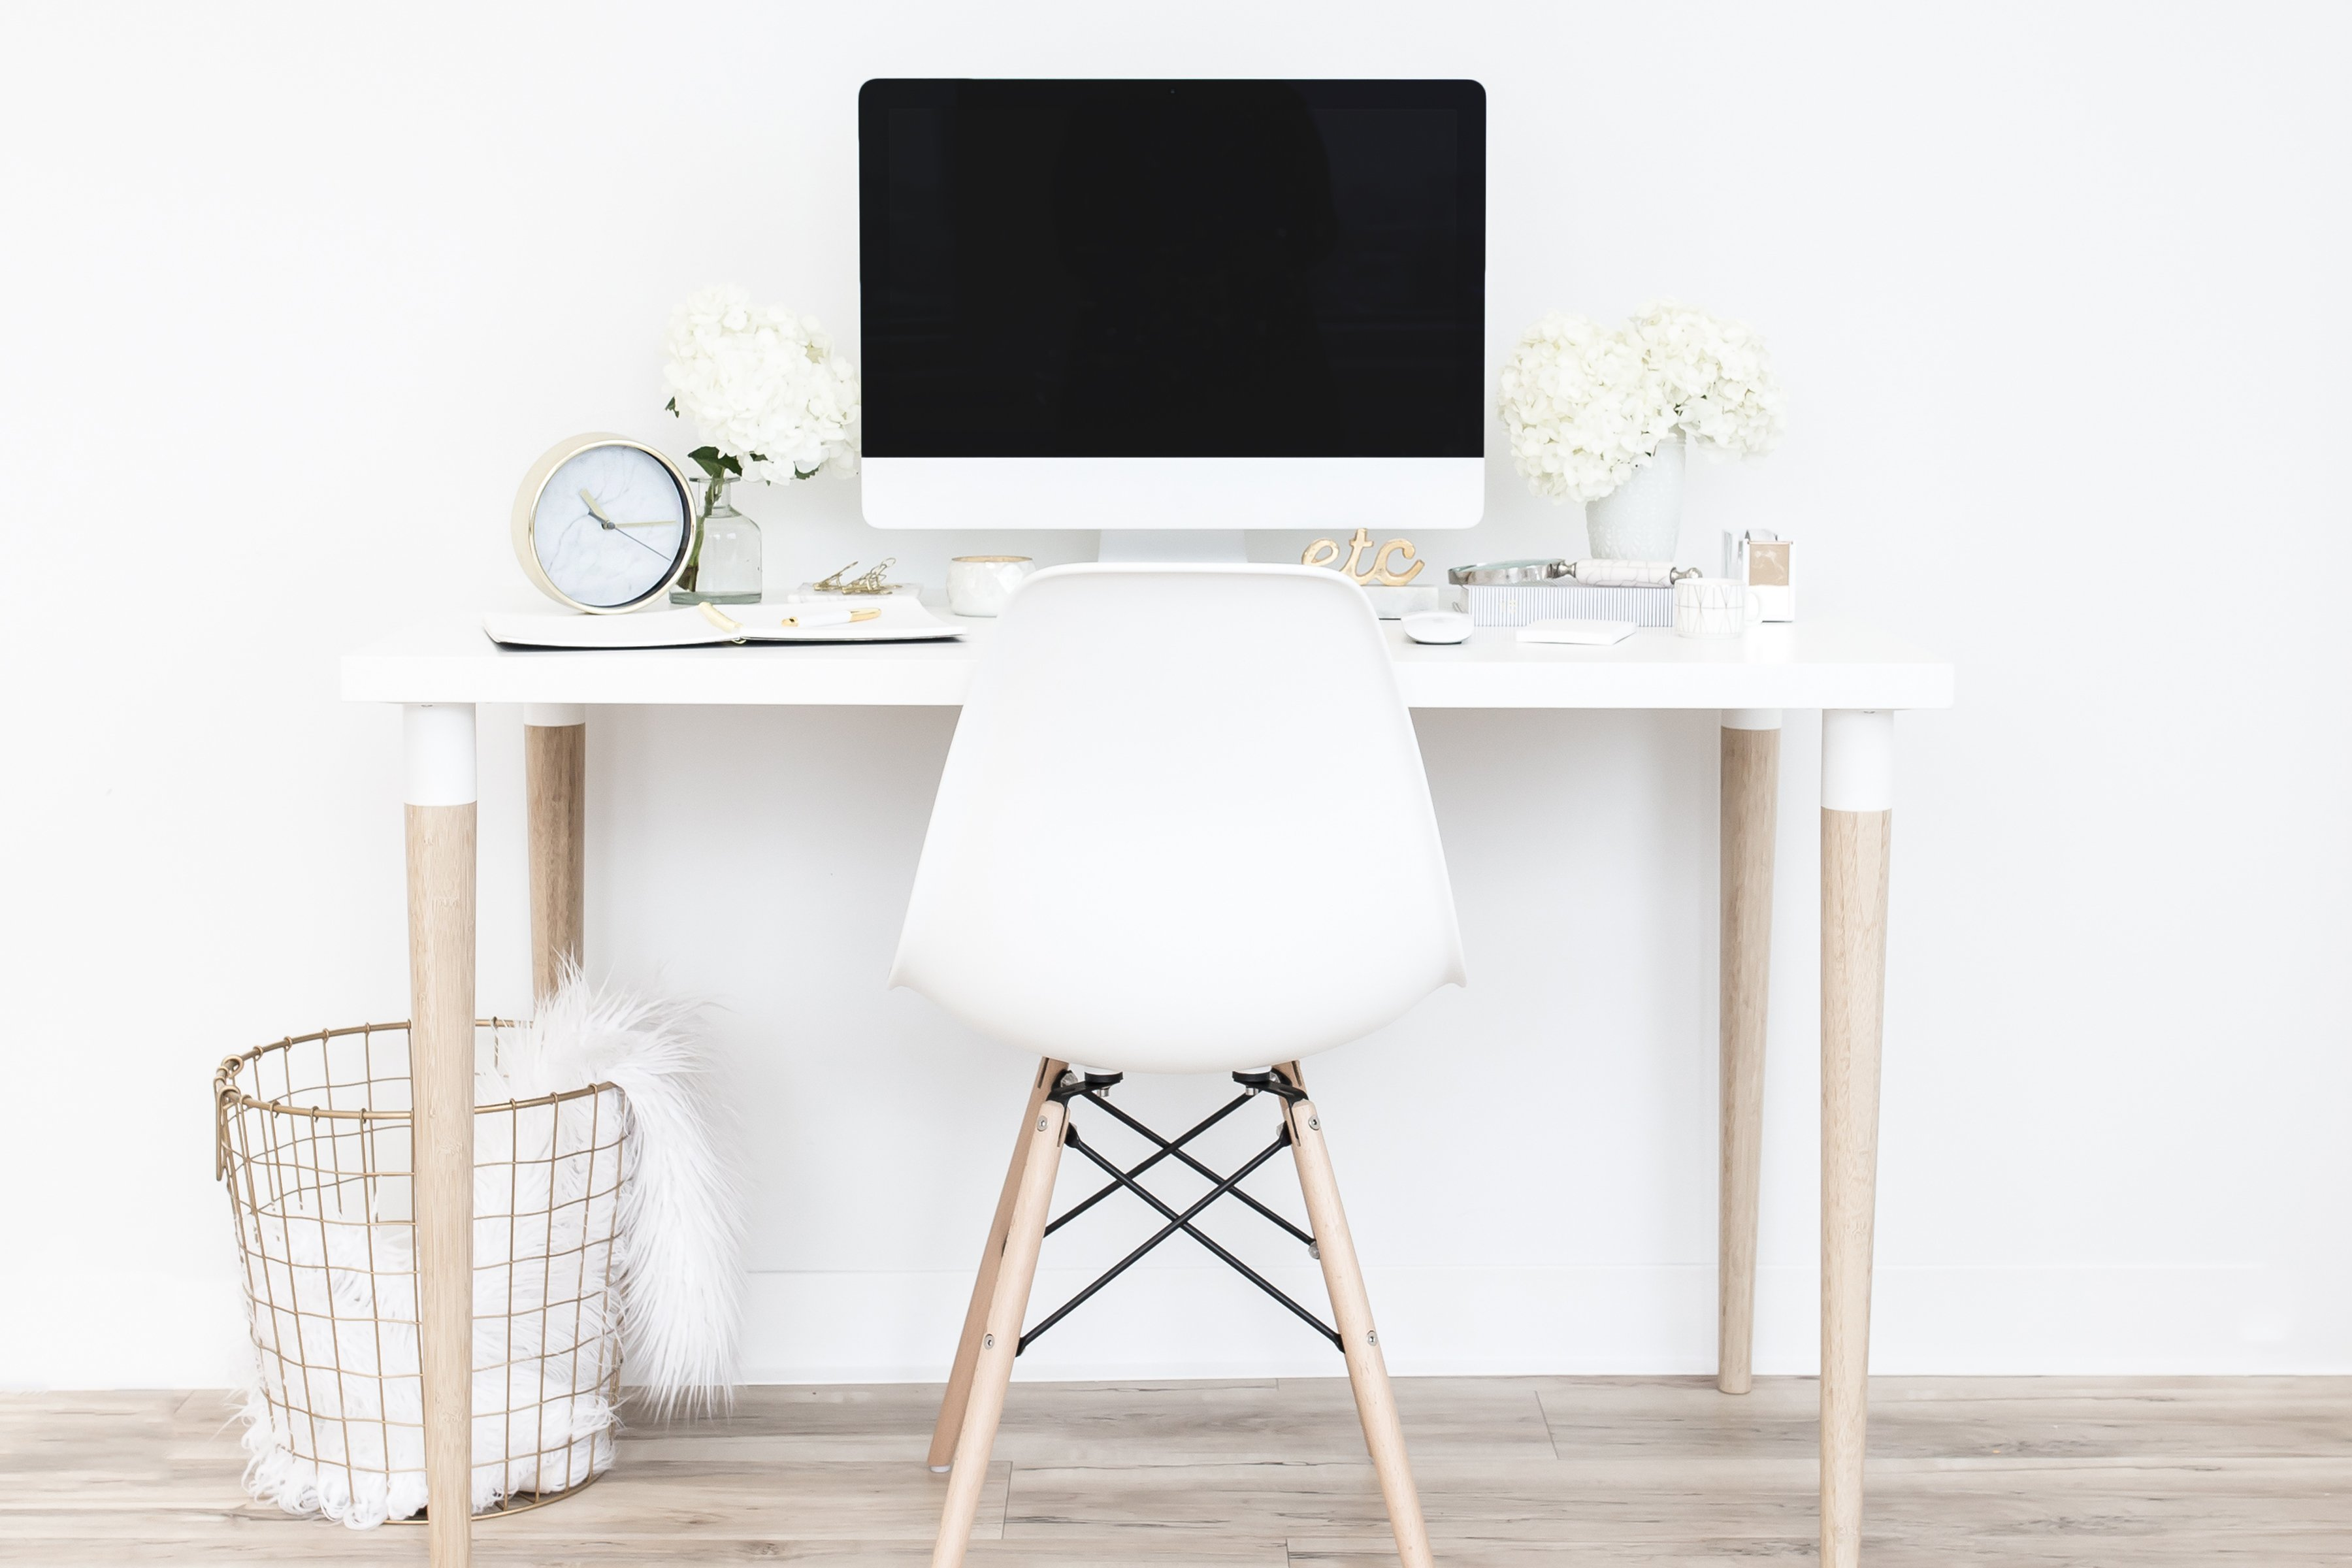 Do not purchase a self-hosting package based on fear articles that hold very little truth or understanding of your own personal circumstances. Make an informed decision about why you should move to self-hosting. #blogging